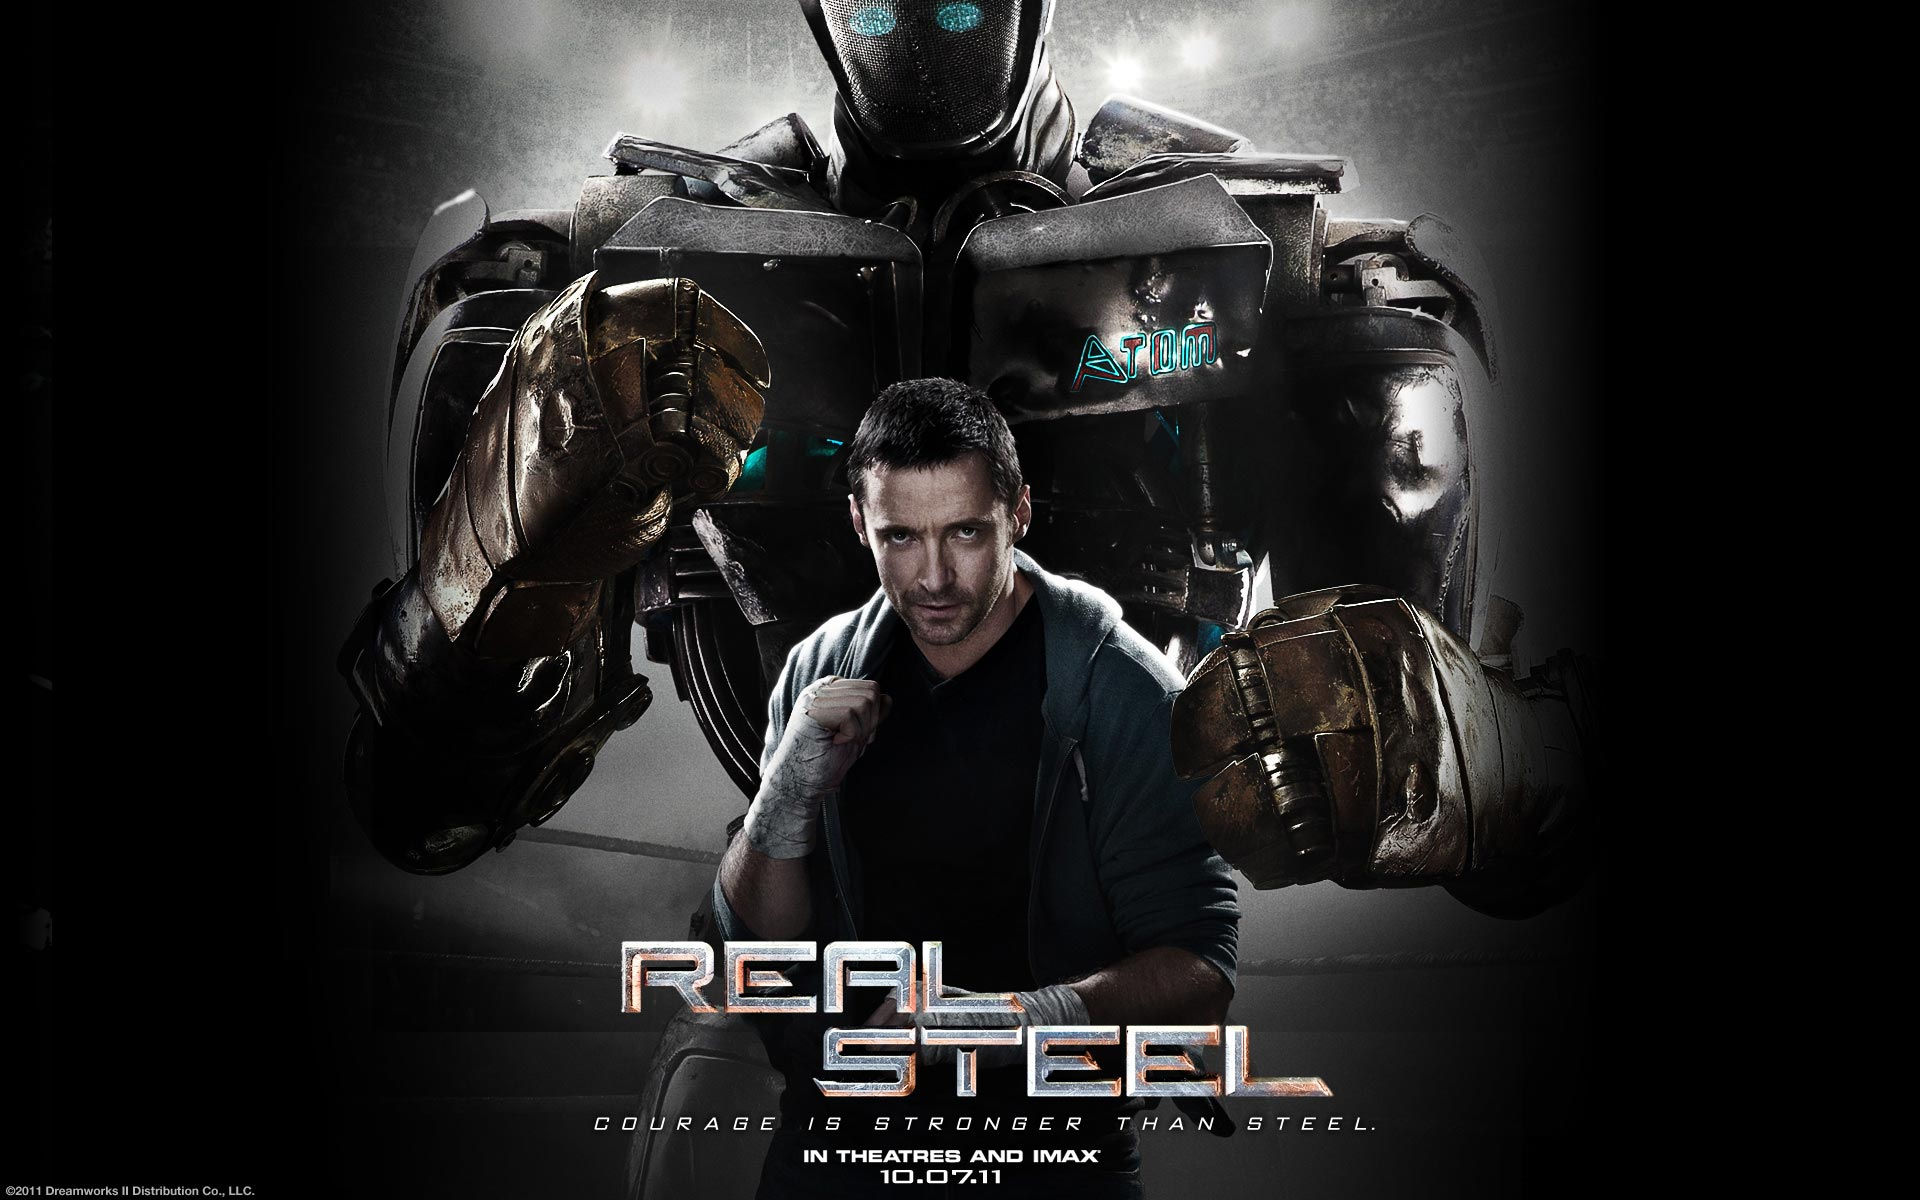 real steel wallpaper  Real Steel HD Wallpaper | Background Image | 1920x1200 | ID:171878 ...